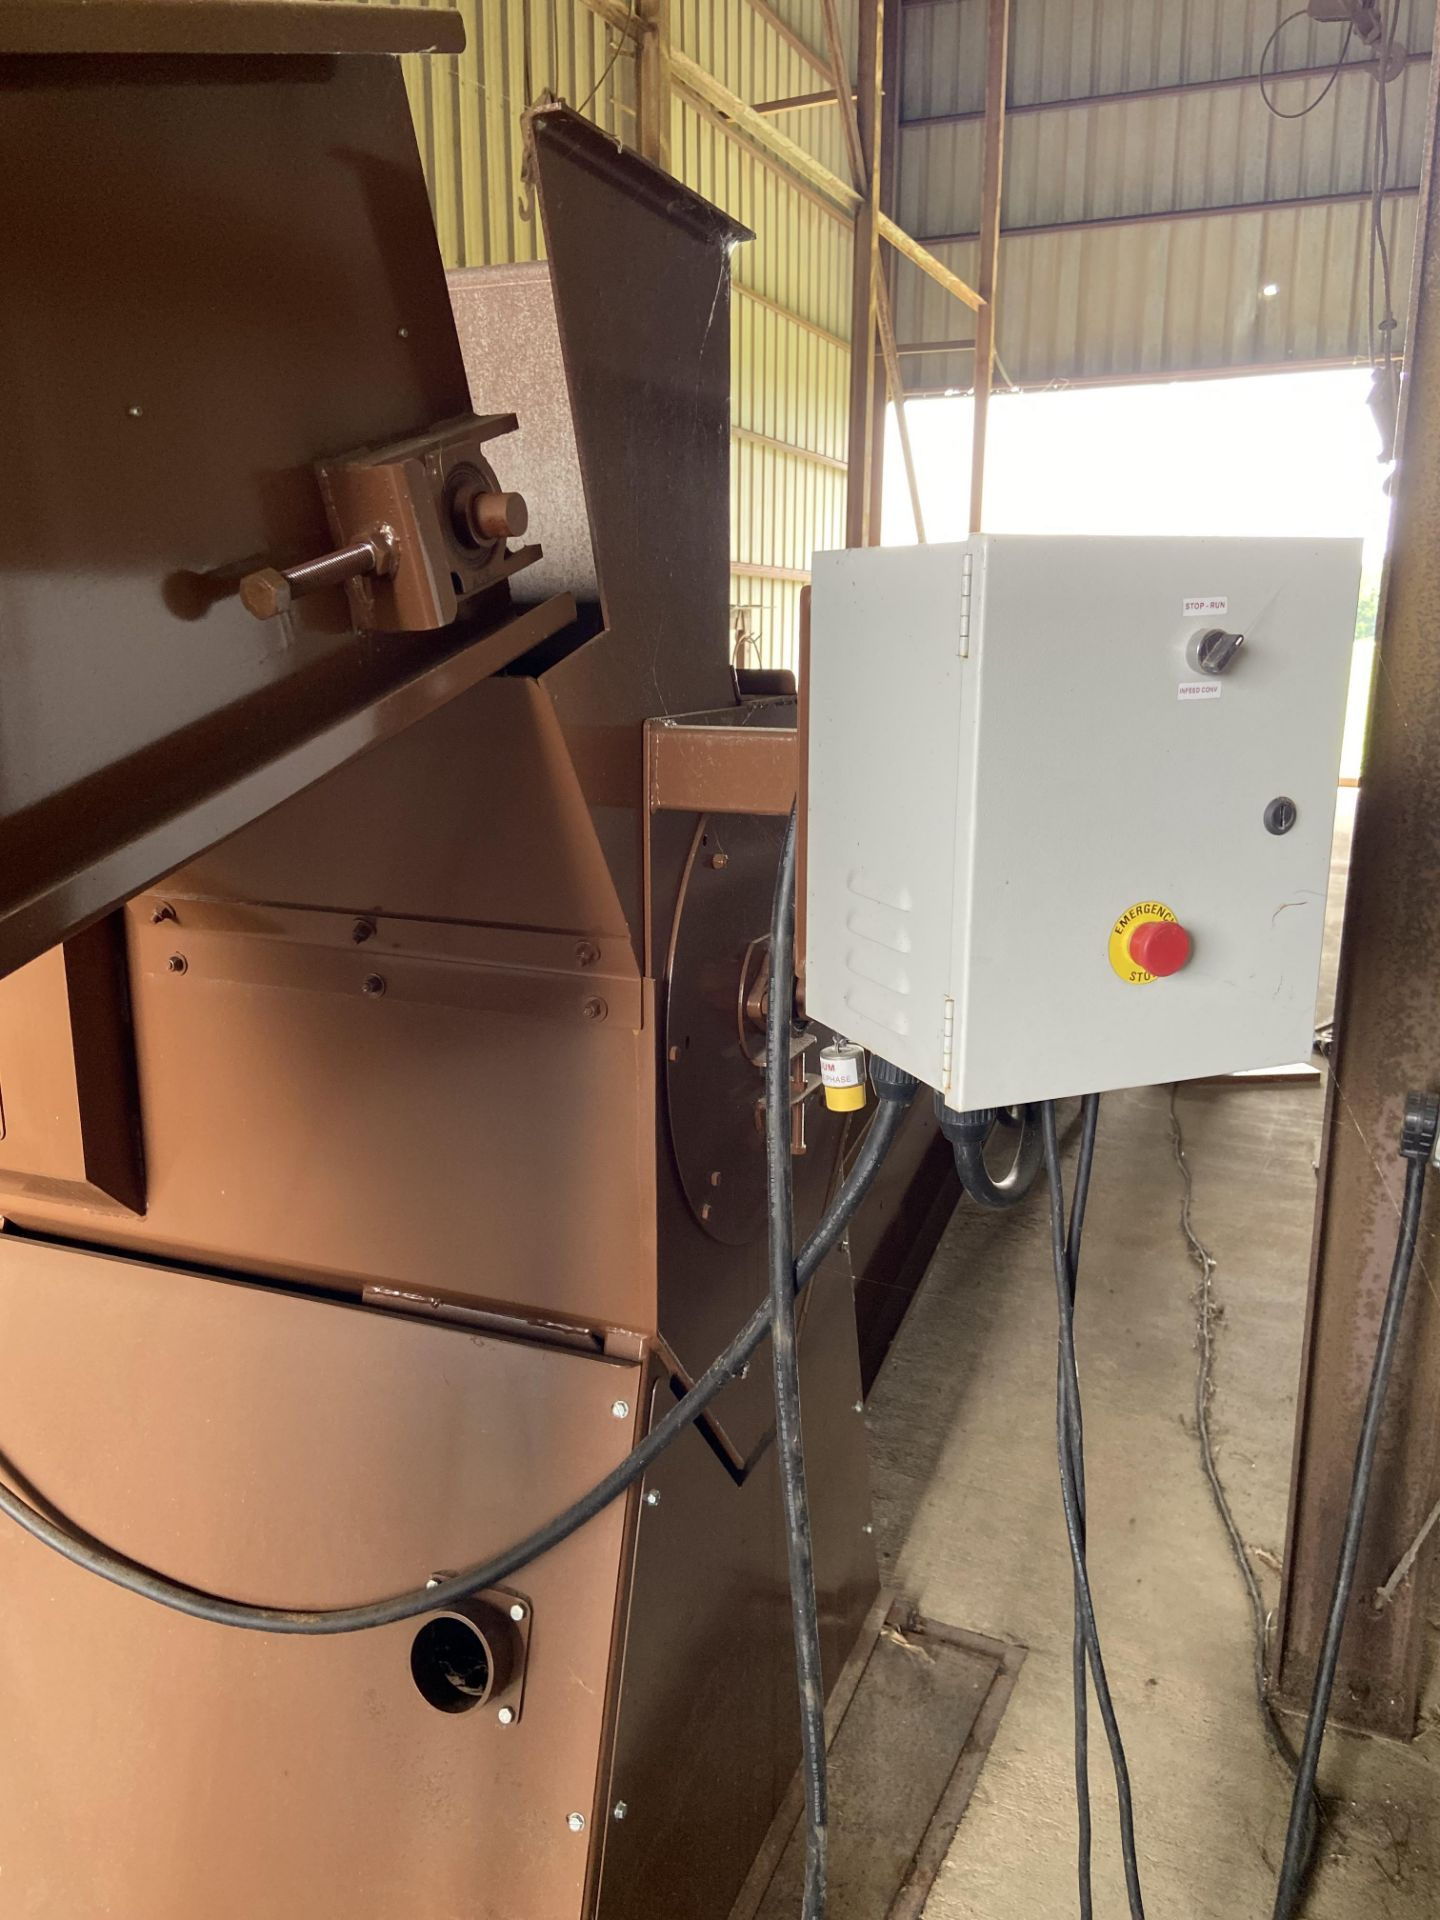 Used Granville Hemp Flower Extractor Includes: Hemp Flower Extractor w/ Vacuum & Conveying System - Image 14 of 17